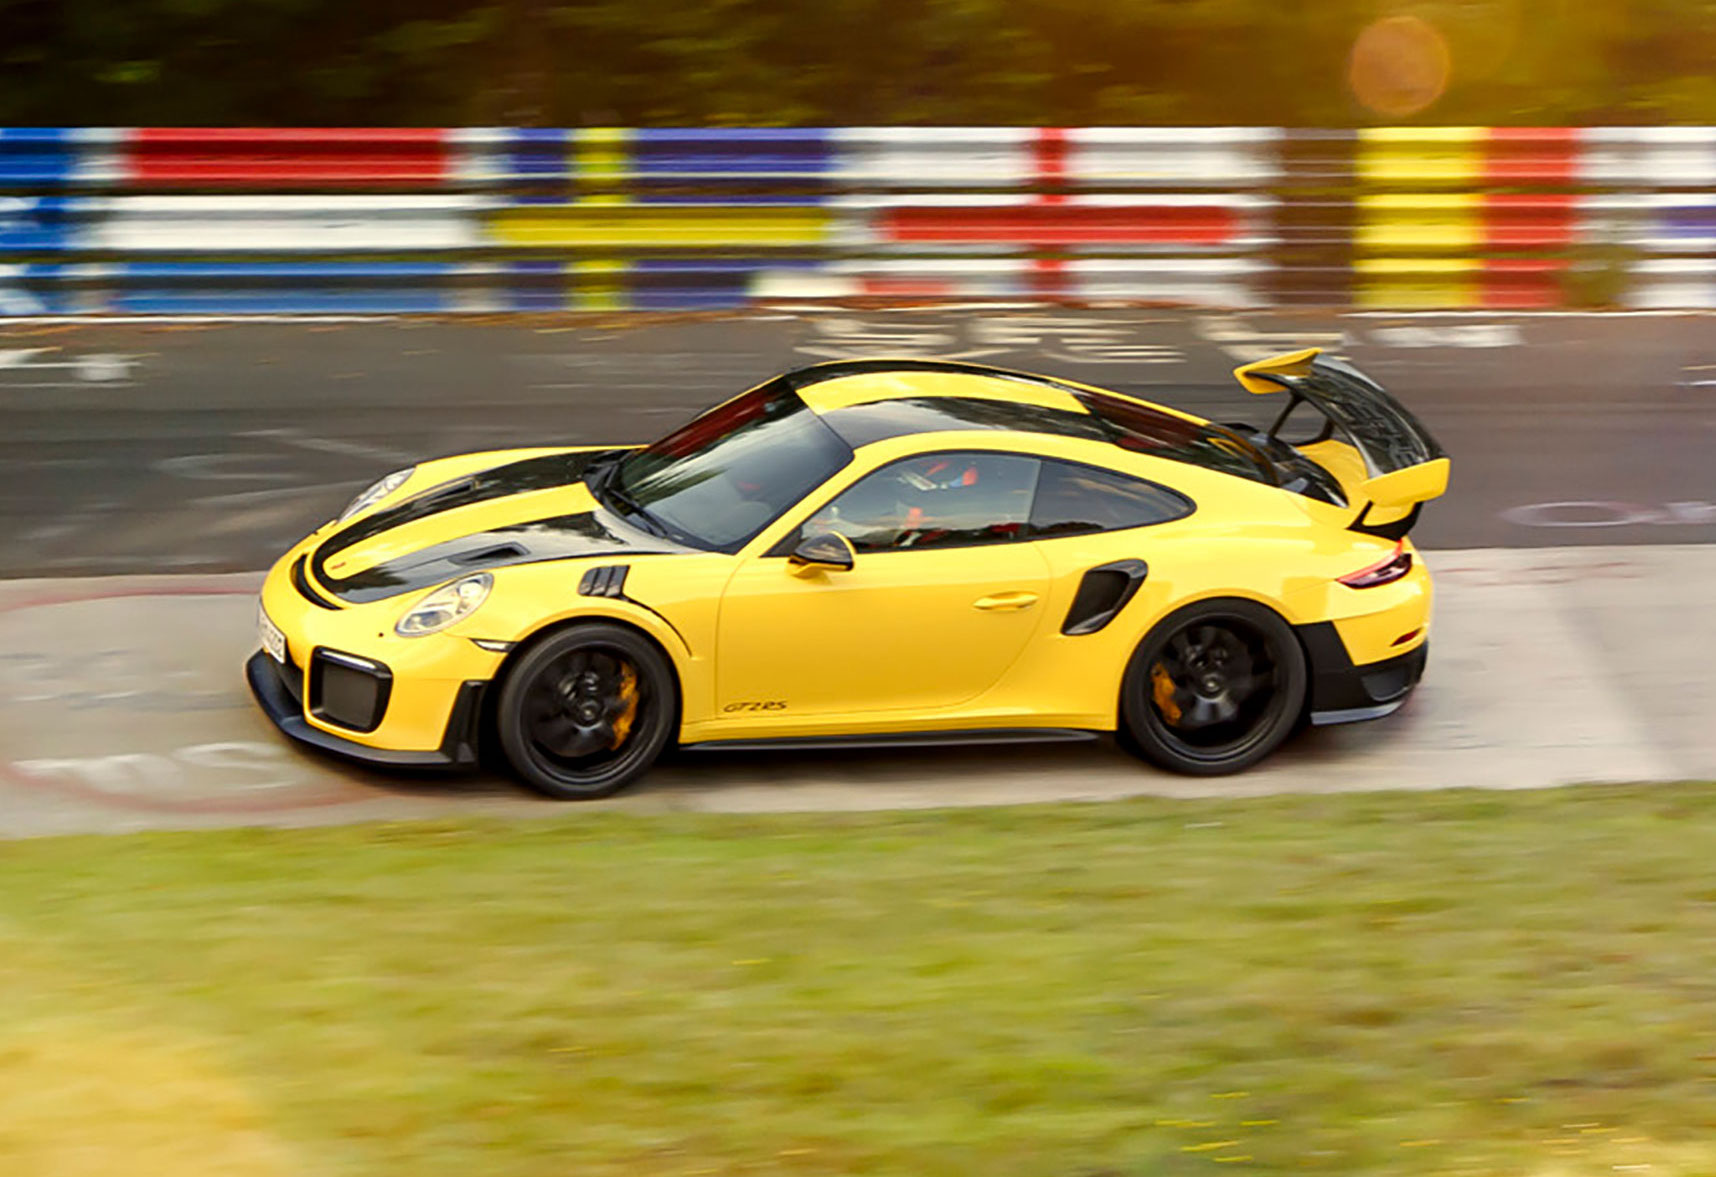 2018-porsche-911-gt2-rs-nurburgring-lap-record-6 Stunning Porsche 911 Gt2 Prix Occasion Cars Trend